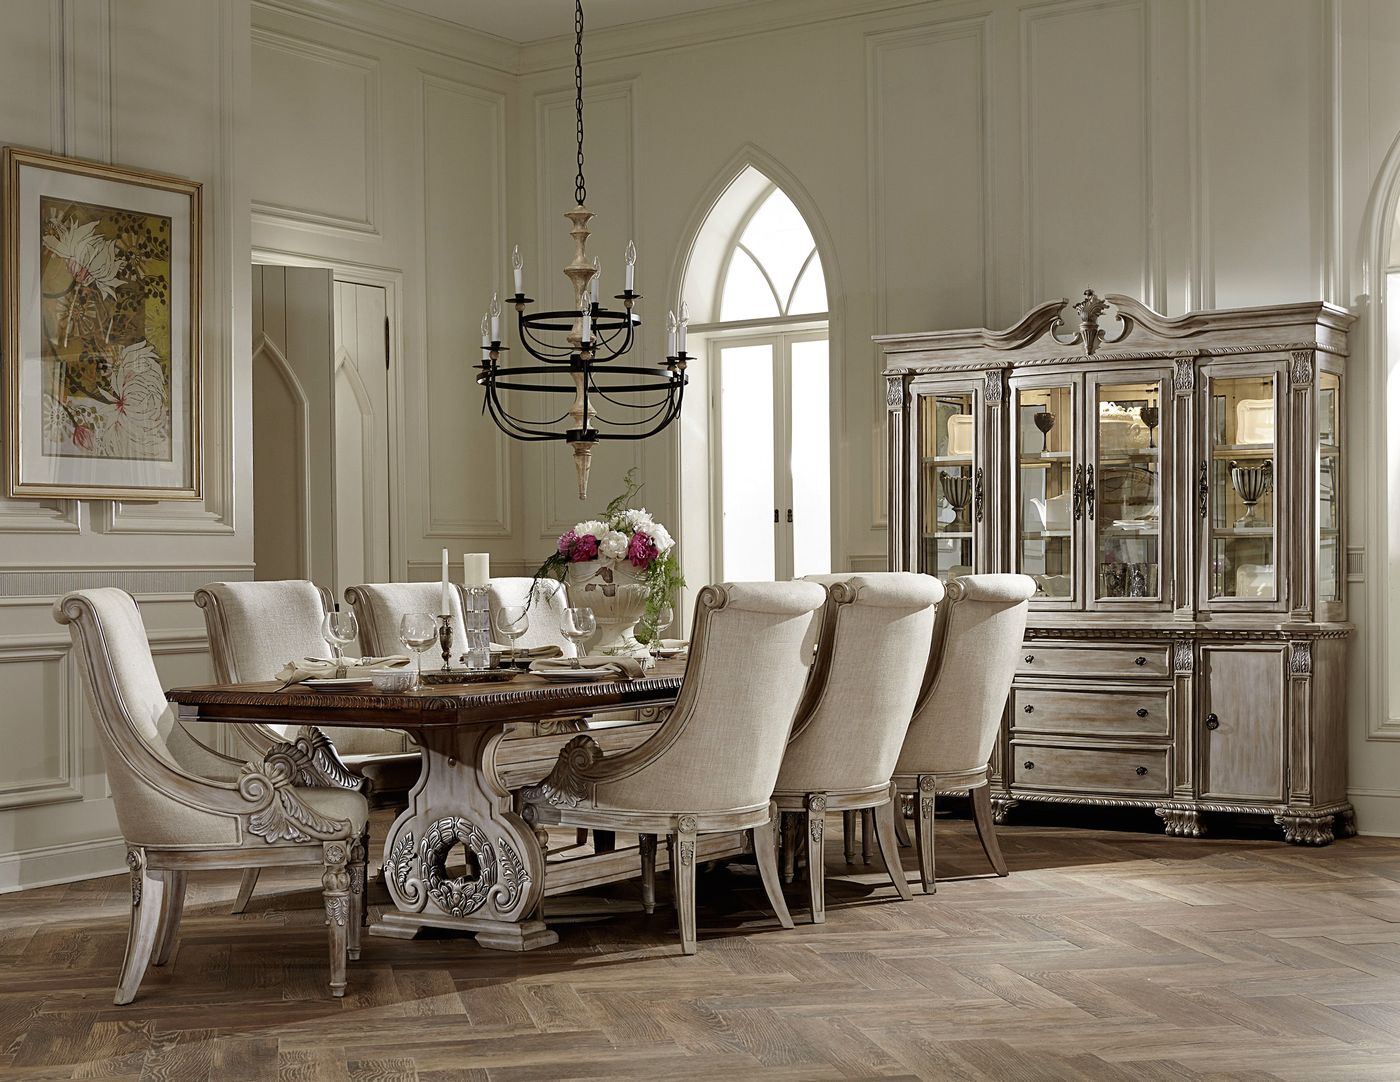 Fancy Dining Room Sets Orleans Ii White Wash Traditional Formal Dining Room